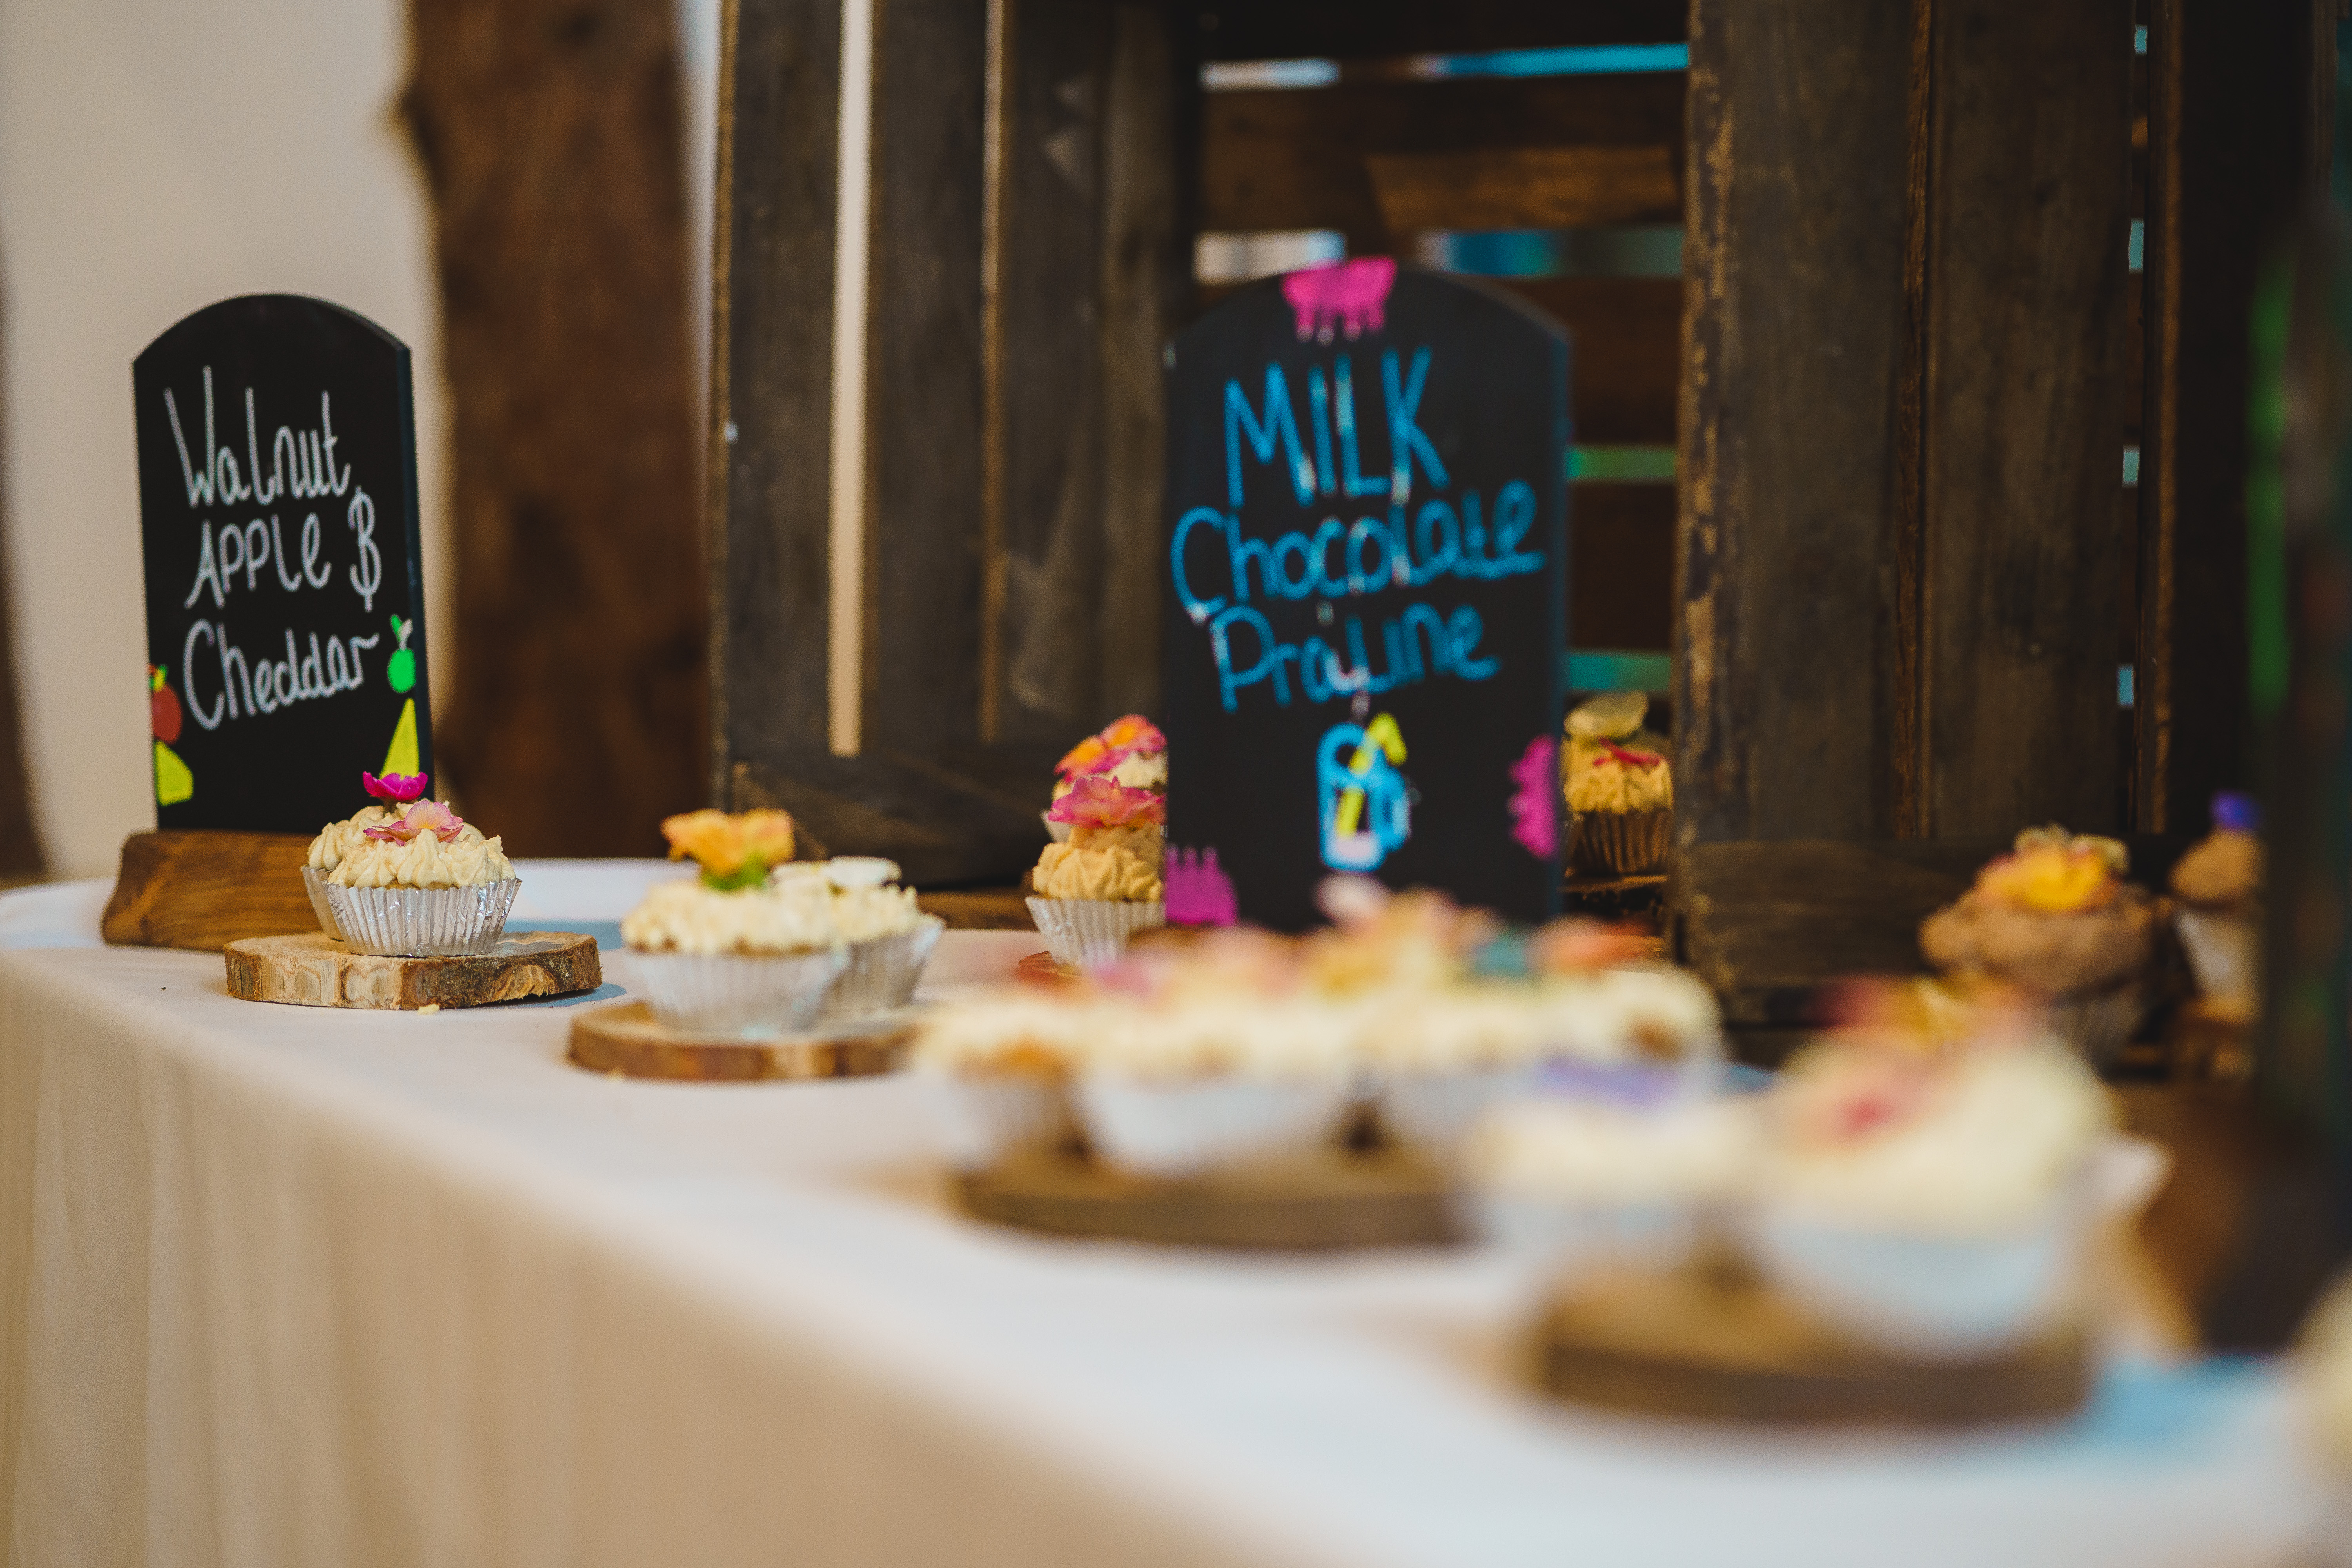 Sweet & Savoury Wedding Cupcakes with Edible Flowers. Photo courtesy of Michael from Jackson & Co Photography